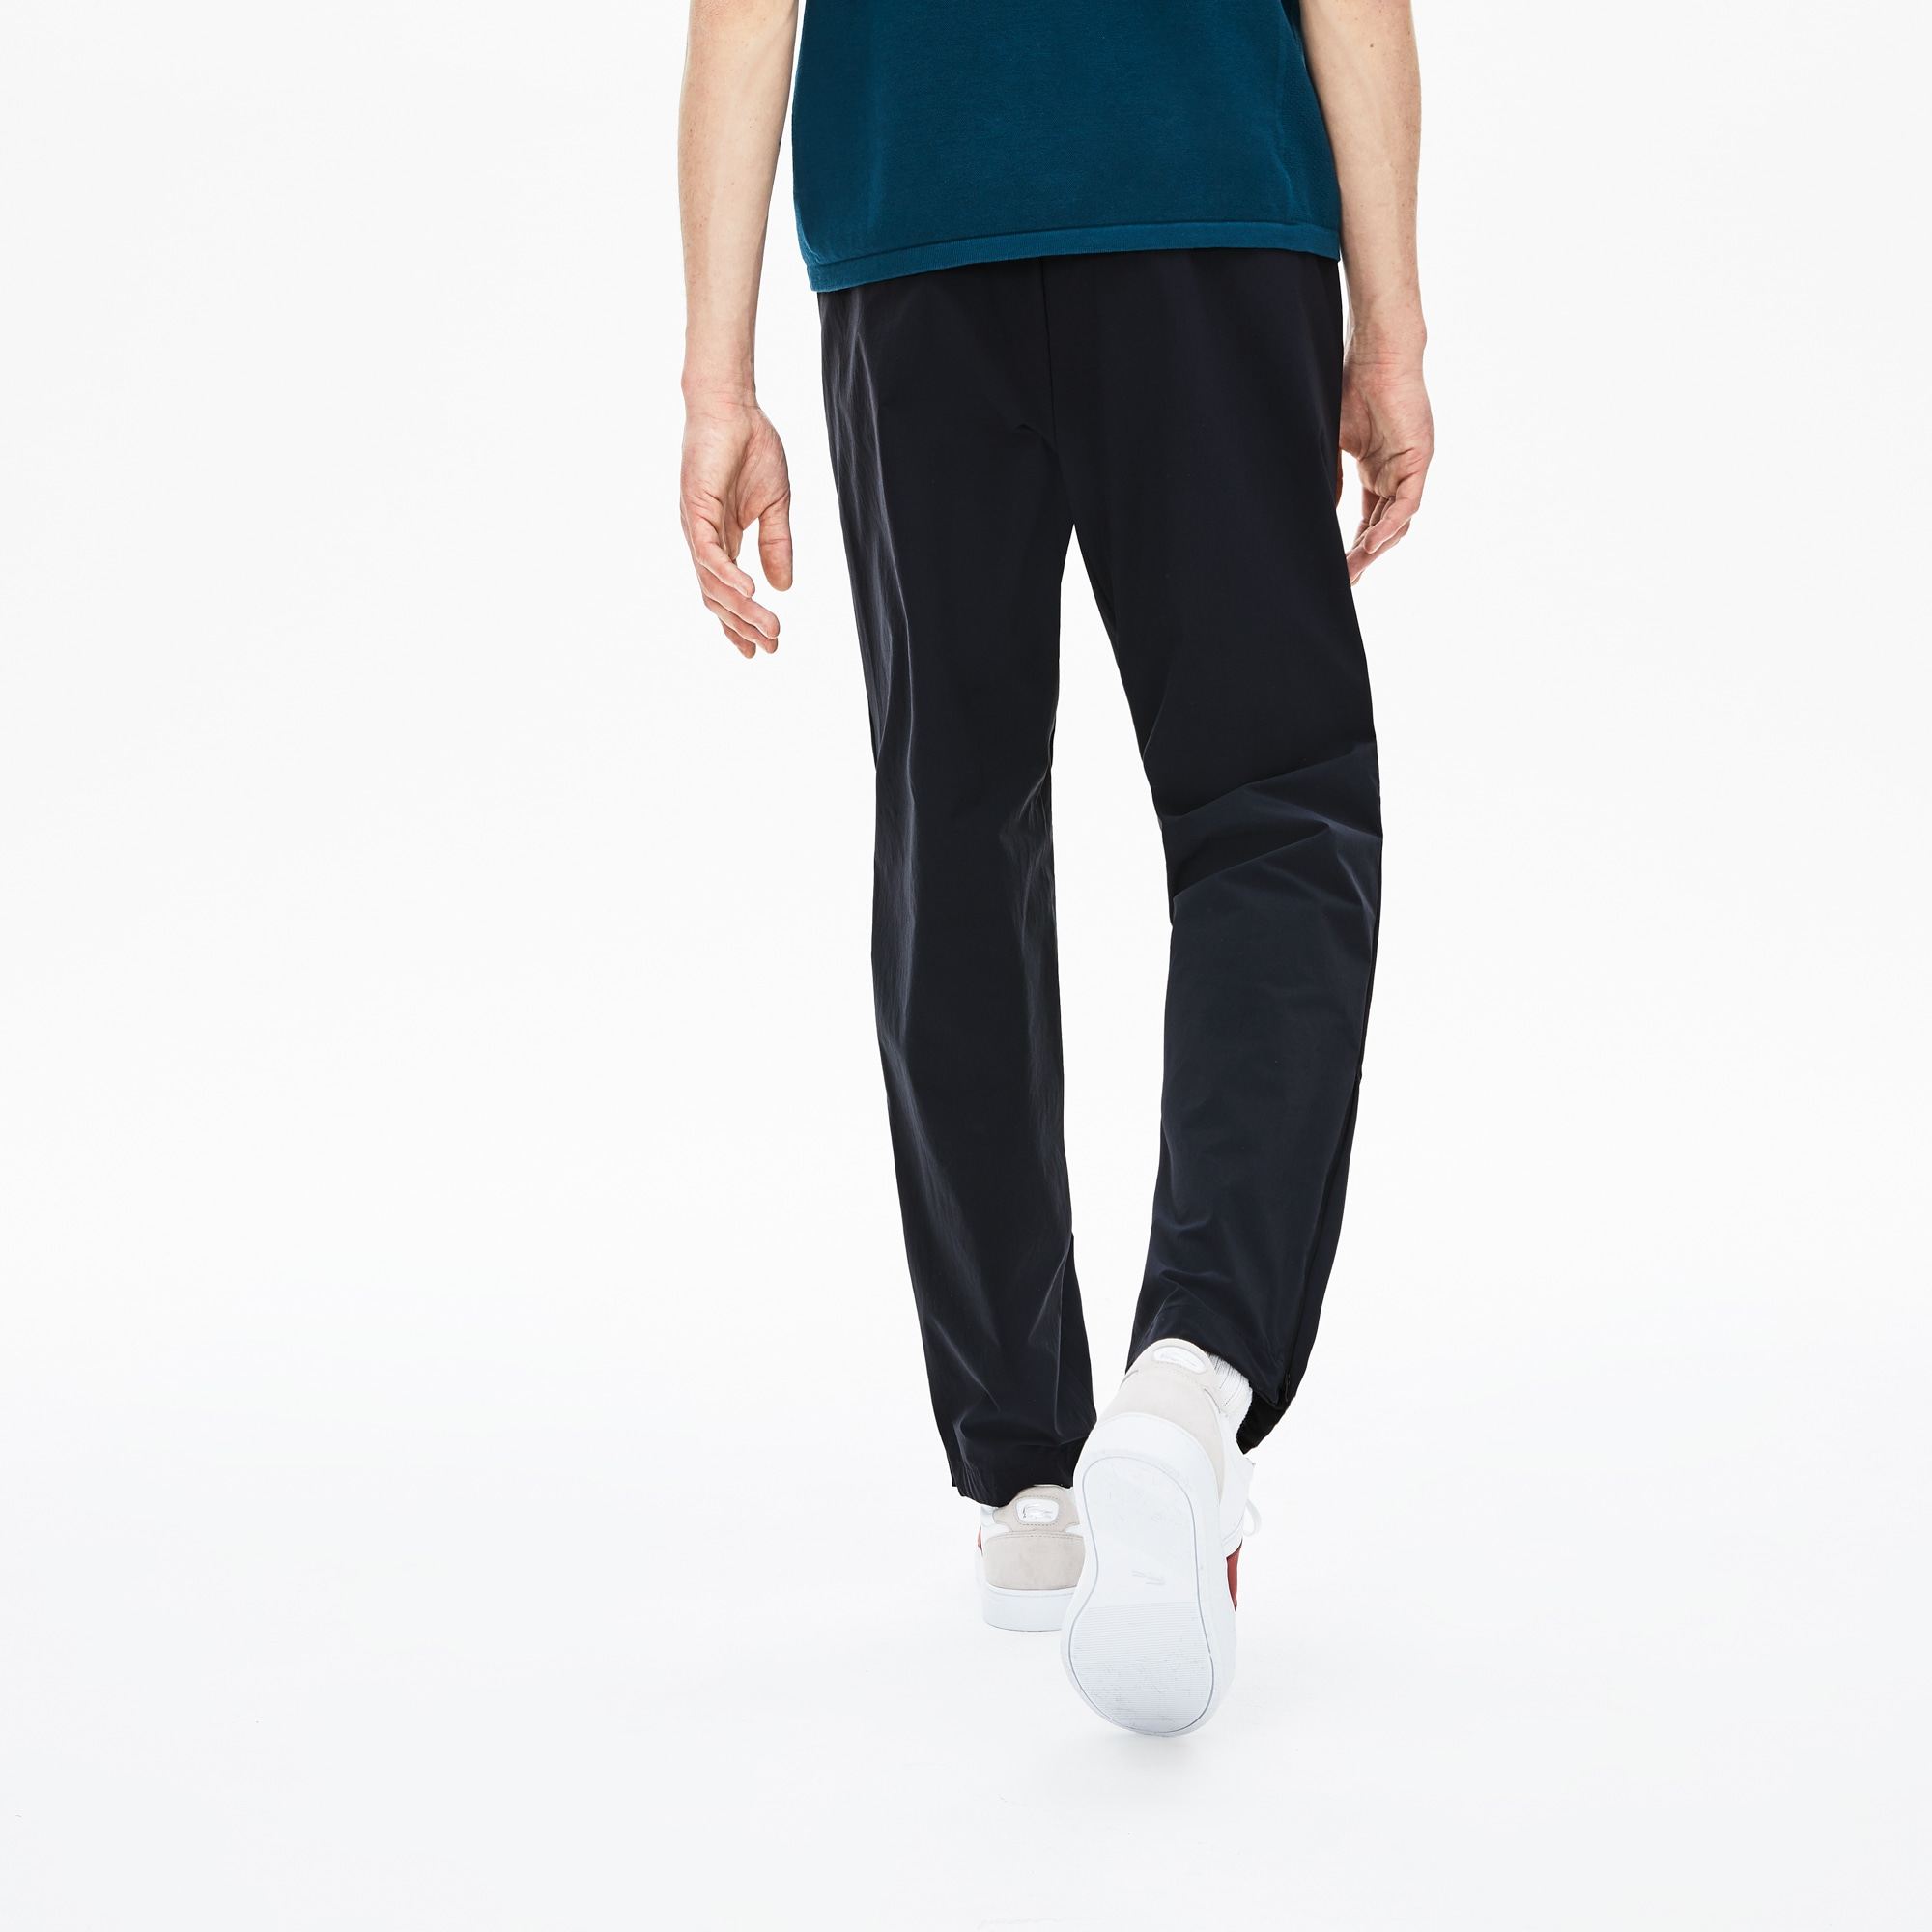 Men's Lacoste Motion Regular Fit Breathable Stretch Chino Pants